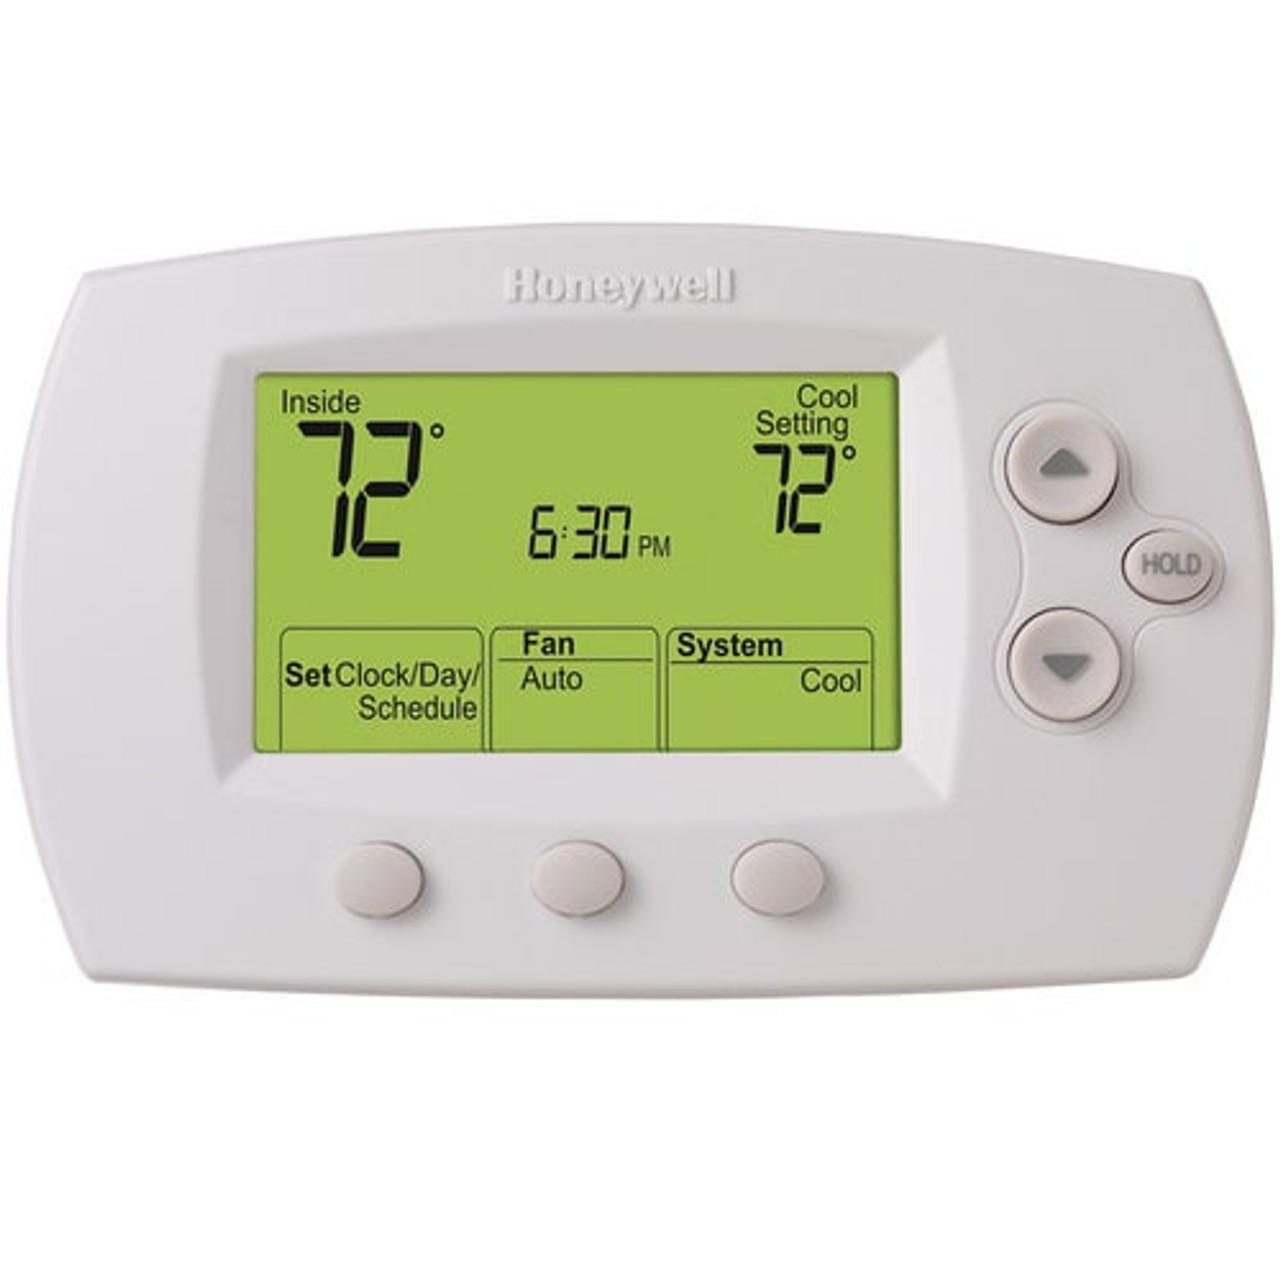 Honeywell TH6110D1005/U FocusPRO 6000 Programmable Thermostat, White